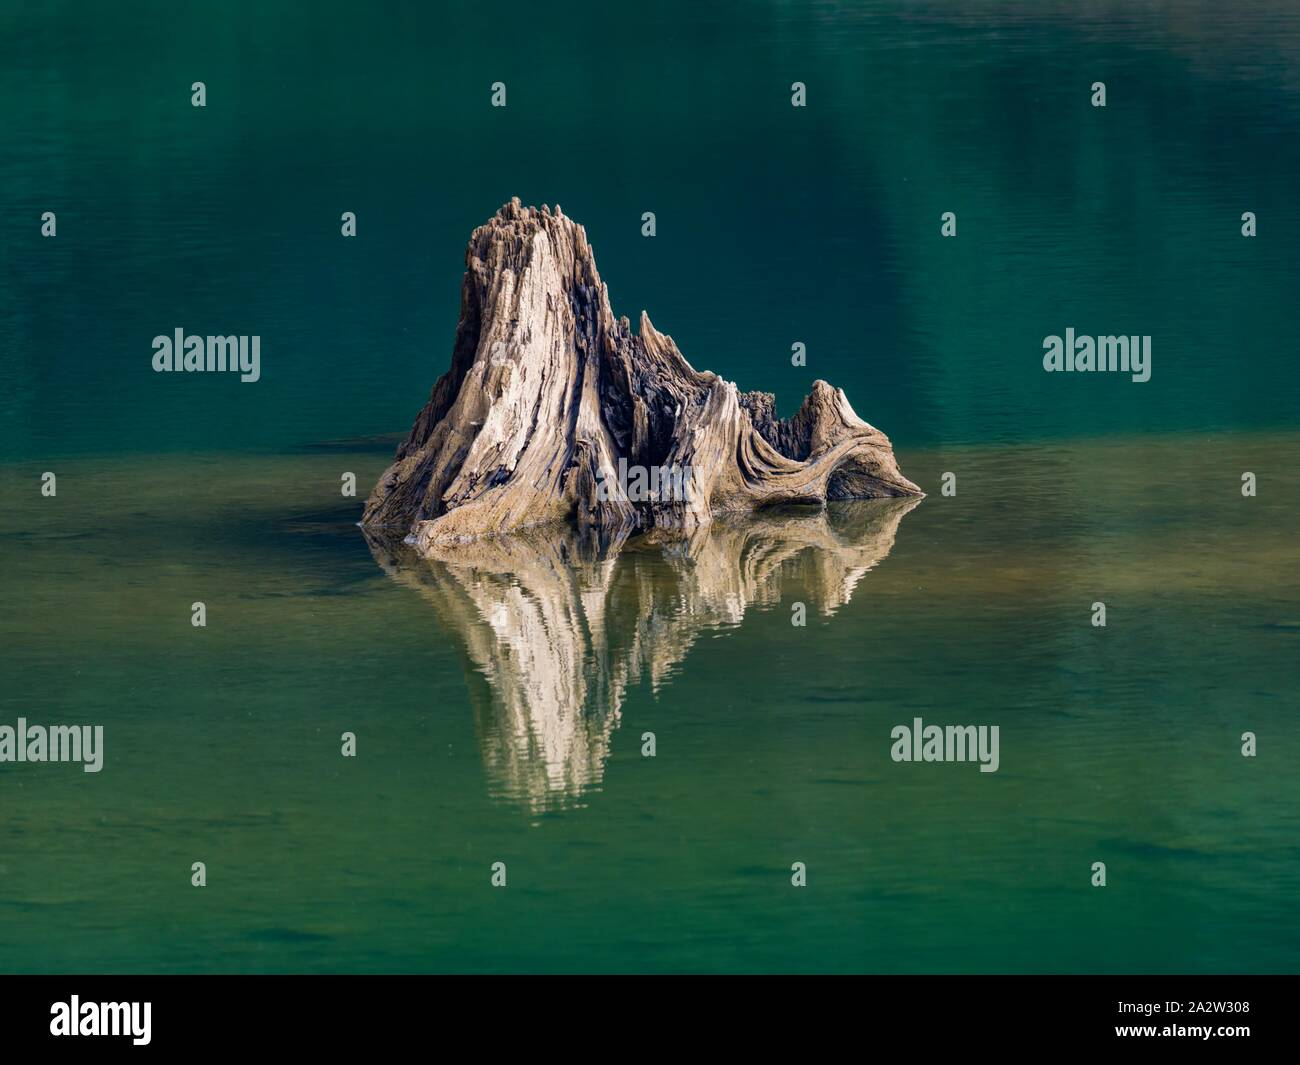 Smooth water lake surface protruding dried stump of tree Stock Photo